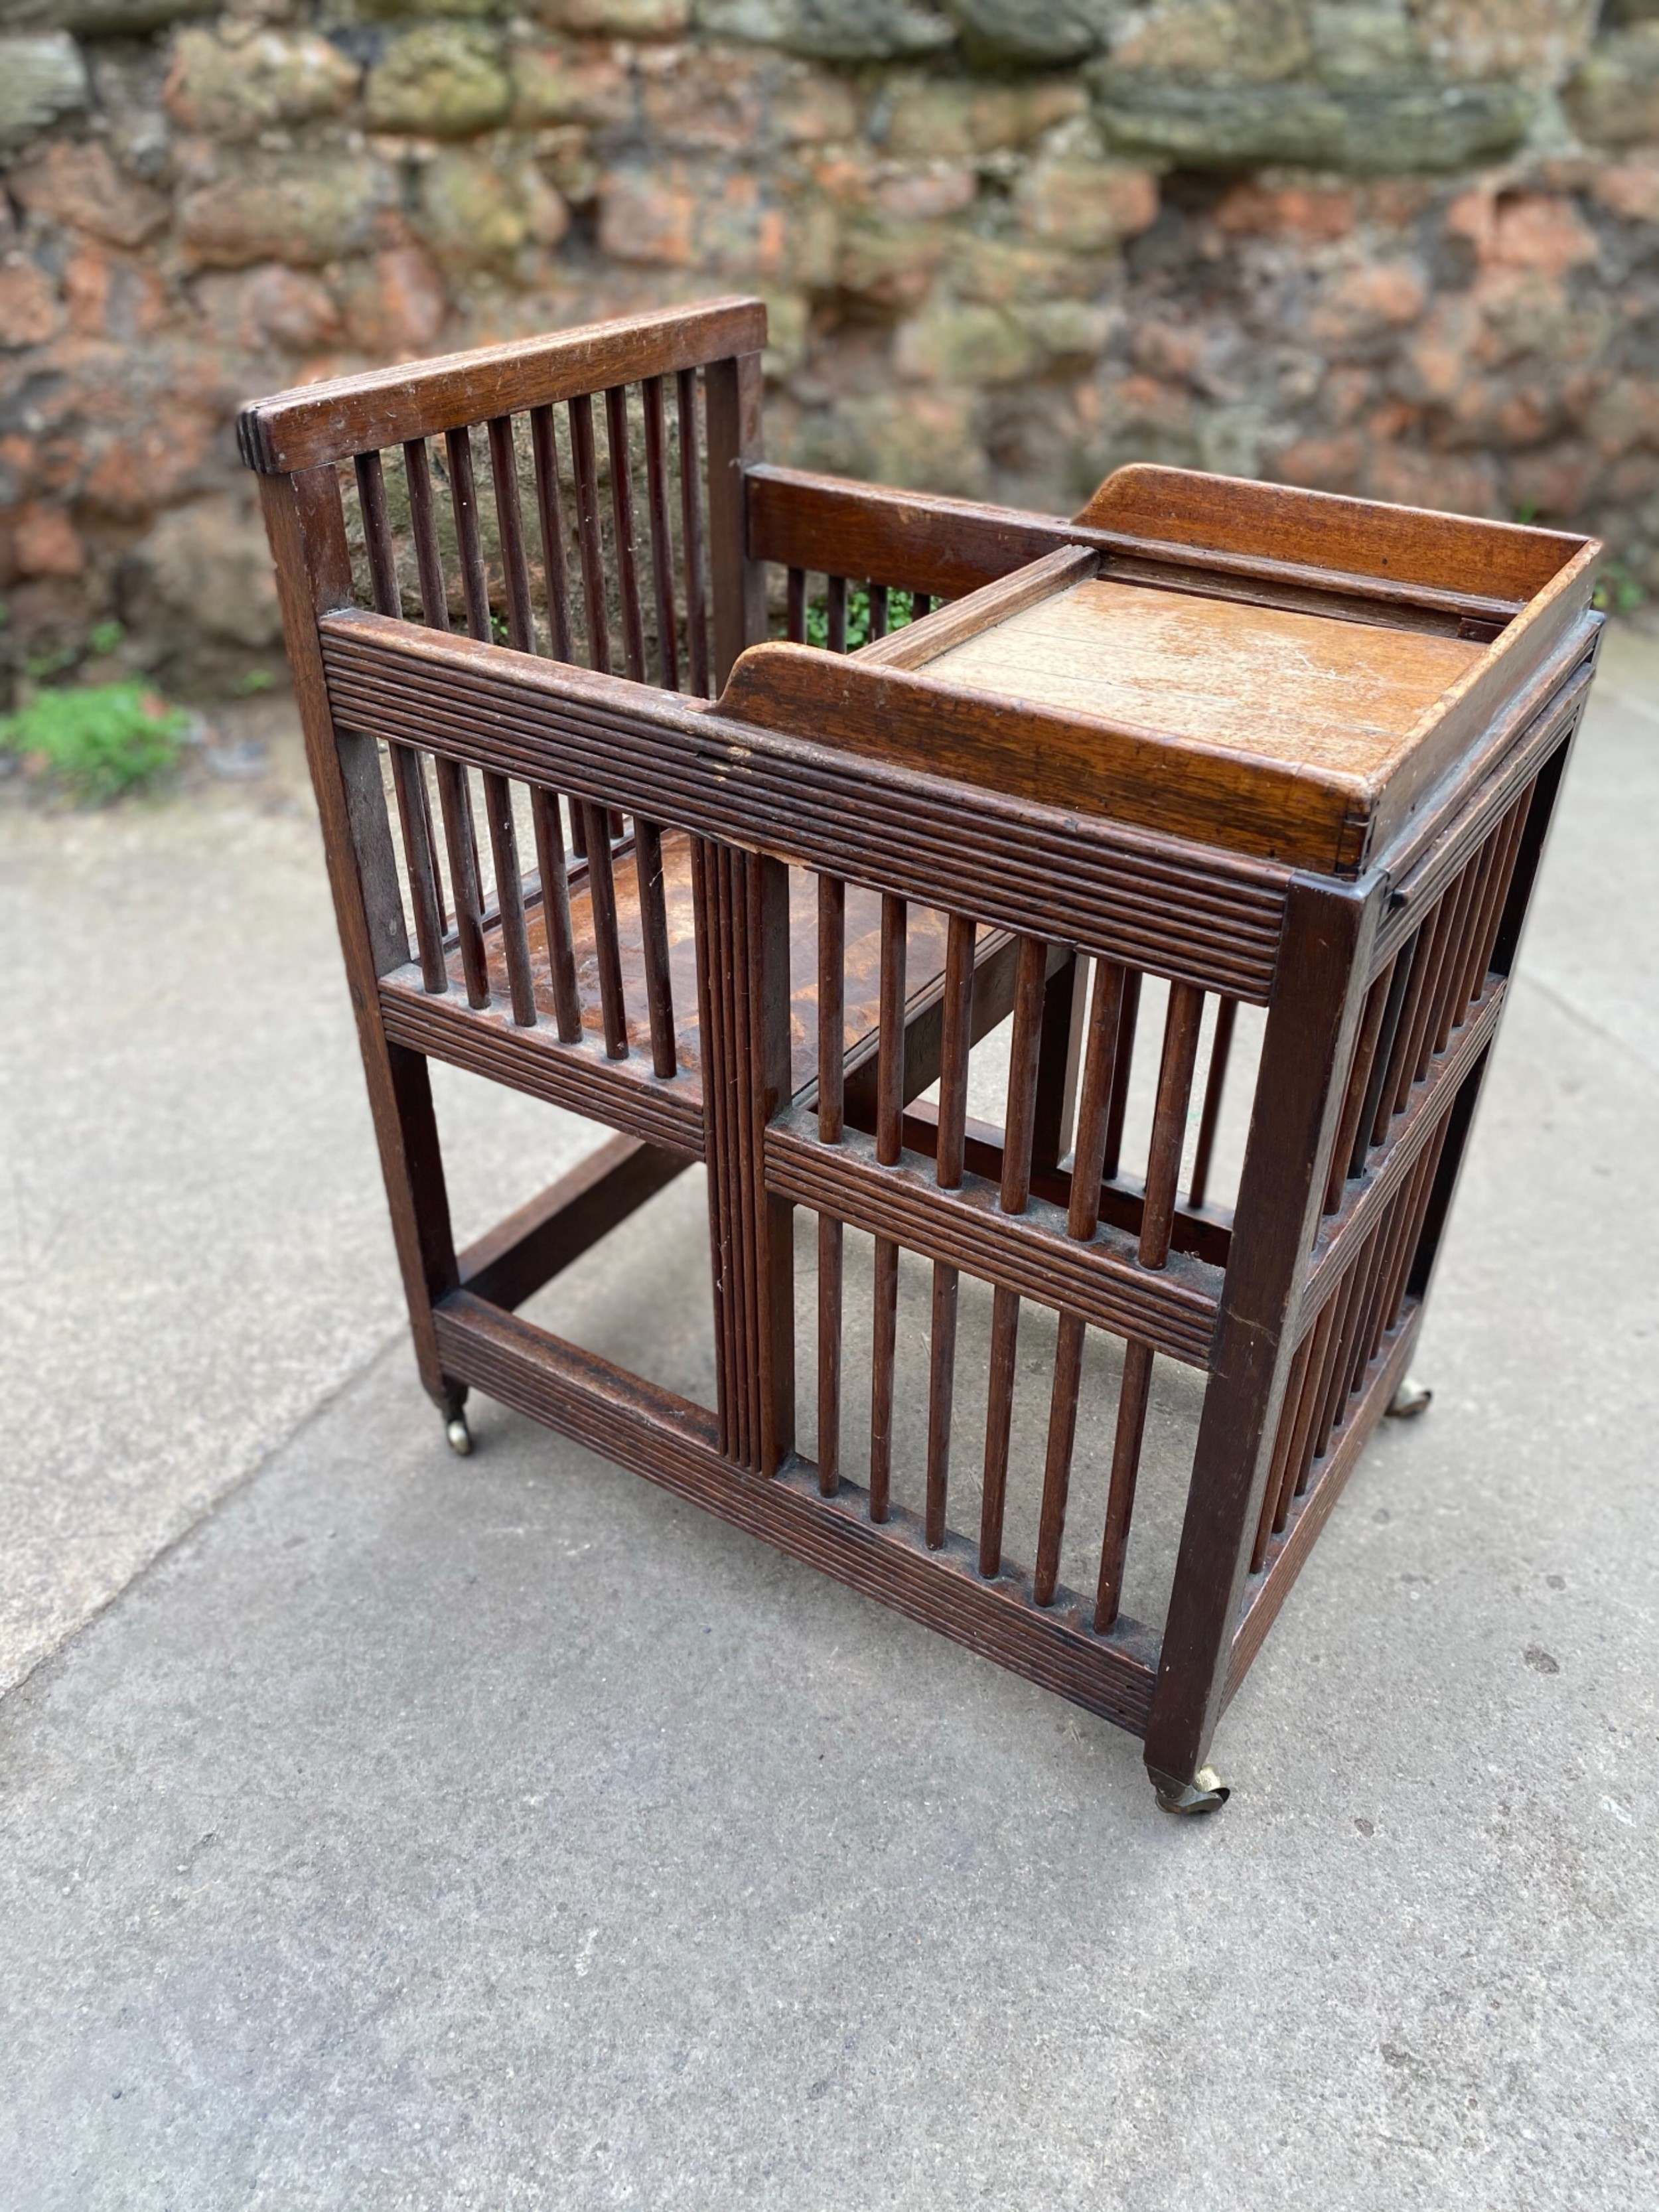 regency childs chair and table